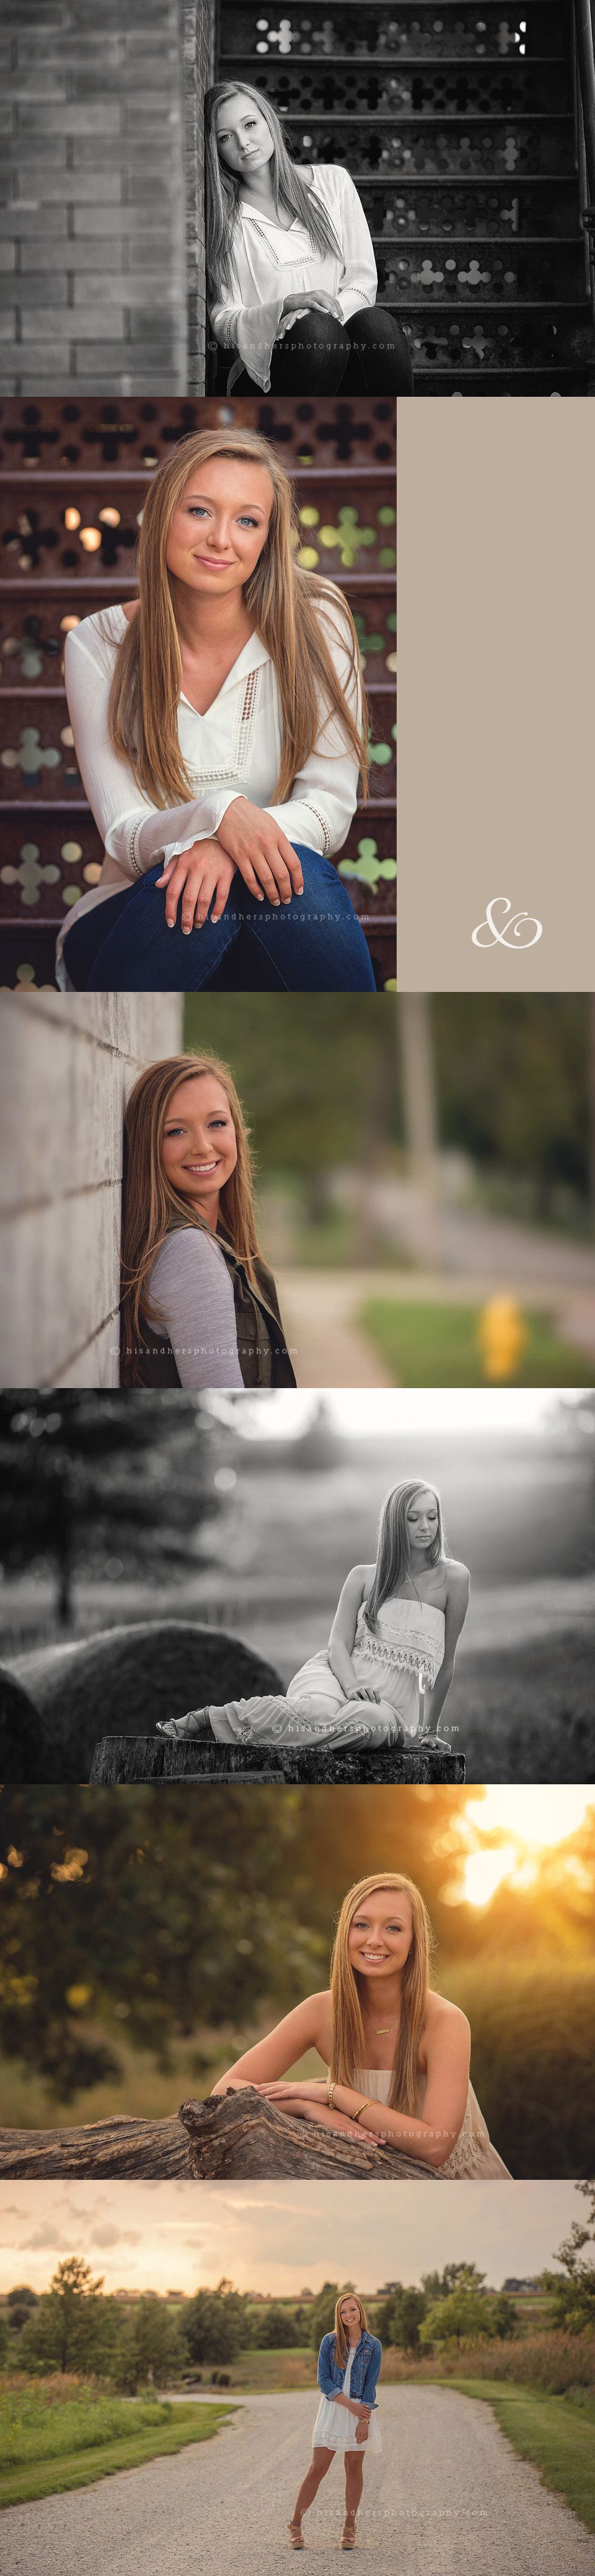 des moines iowa senior portraits senior pictures photographer photography studio